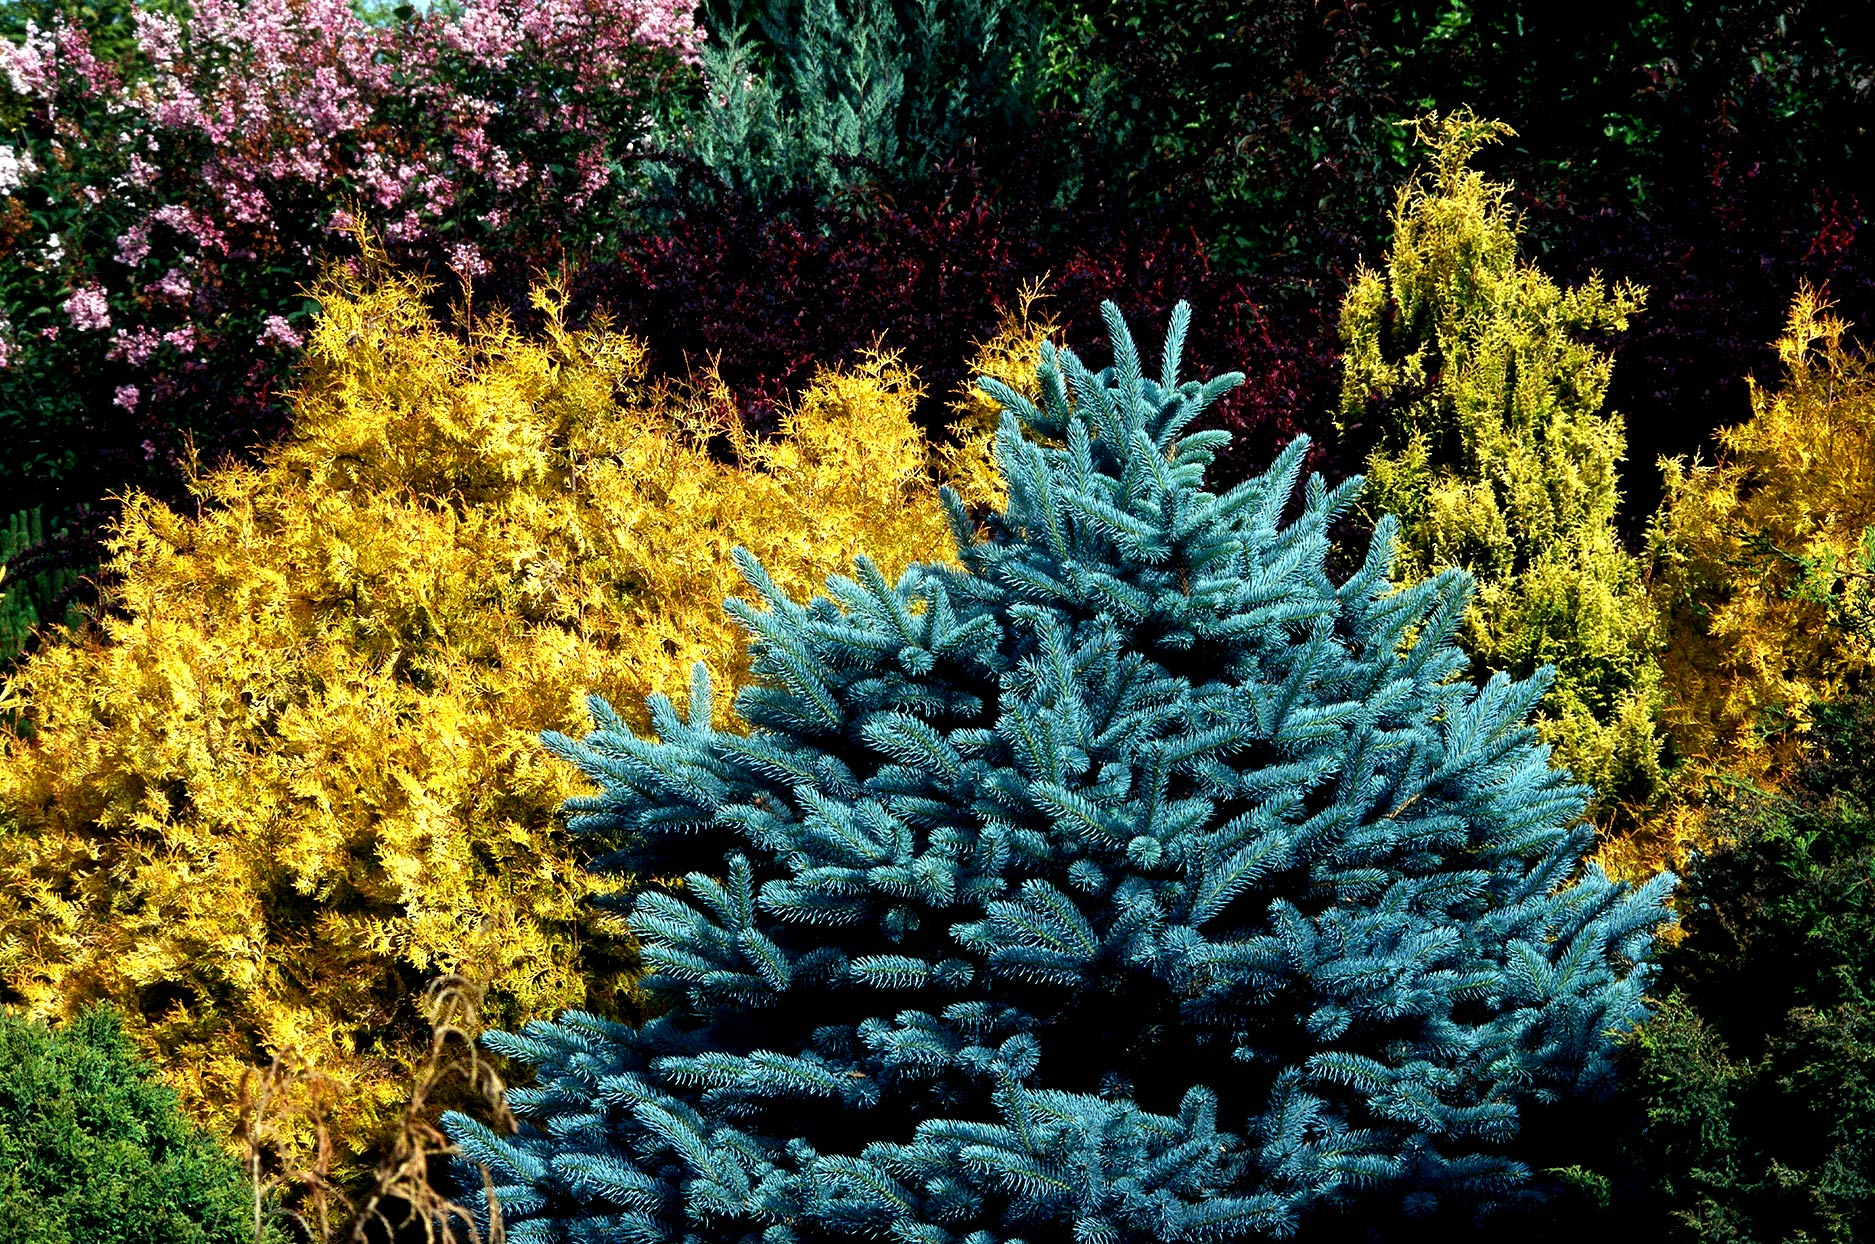 Blue spruce with golden arborvitae